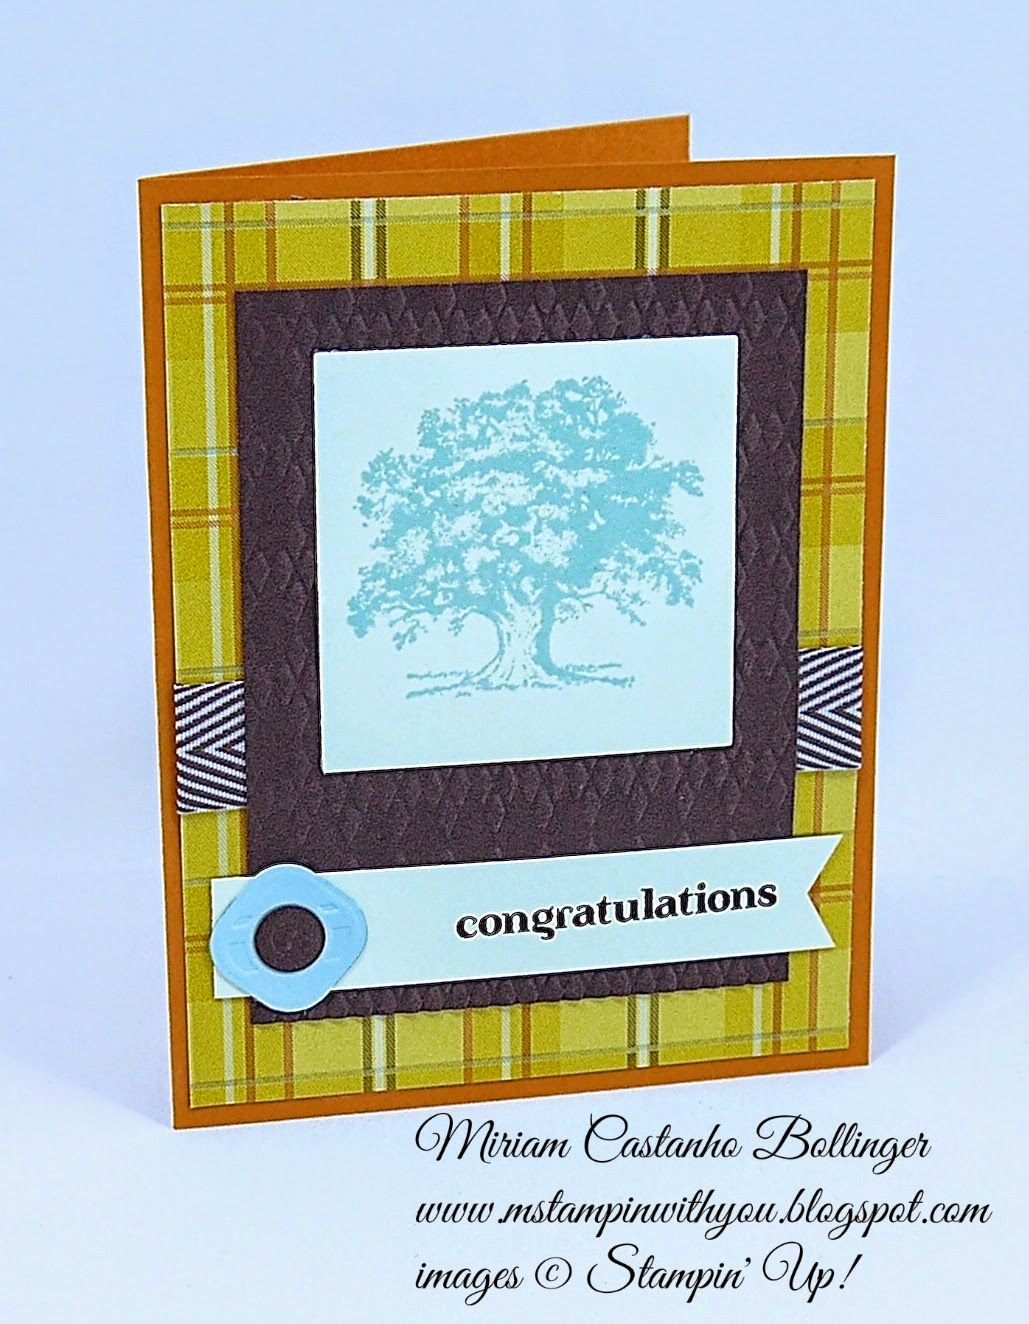 Mojo MOnday 358, Miriam Castanho Bollinger, #mstampinwithyou, stmapin up, demonstrator, masculine card, lovely as a tree, delightful dozen, little pieces embosslits, squares collection, su